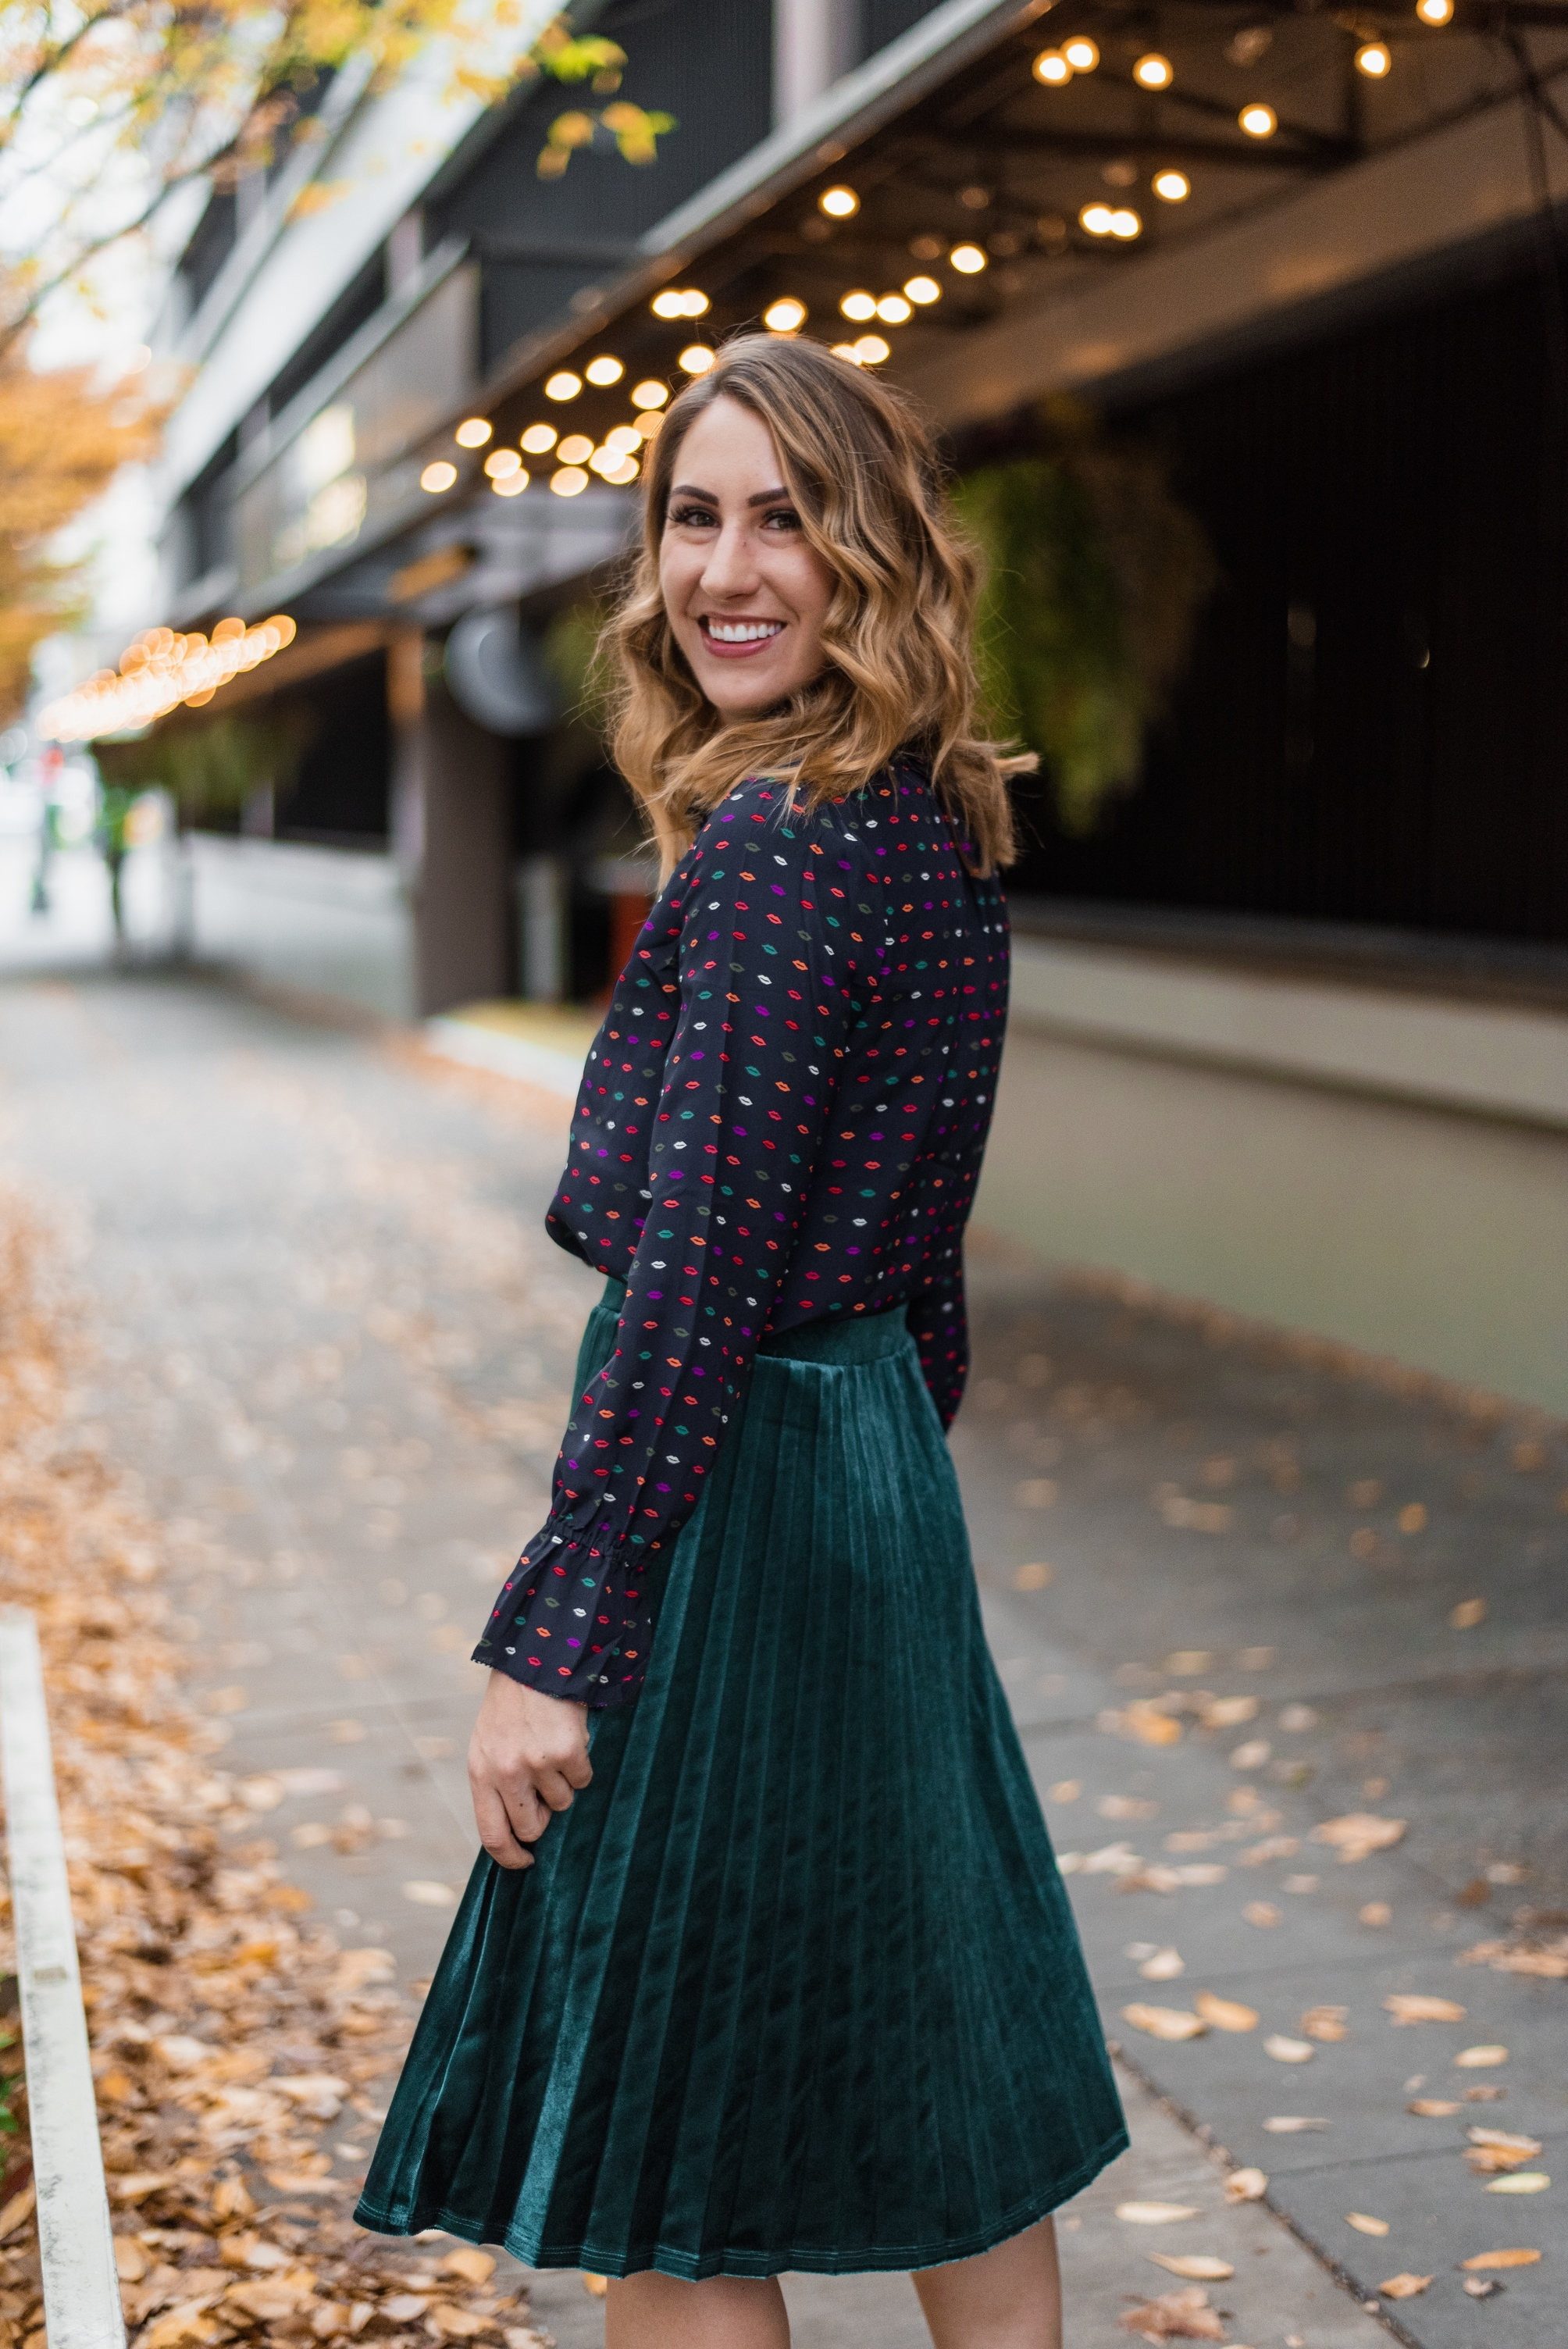 seattle fashion blogger, holiday style, diary of this girl megan